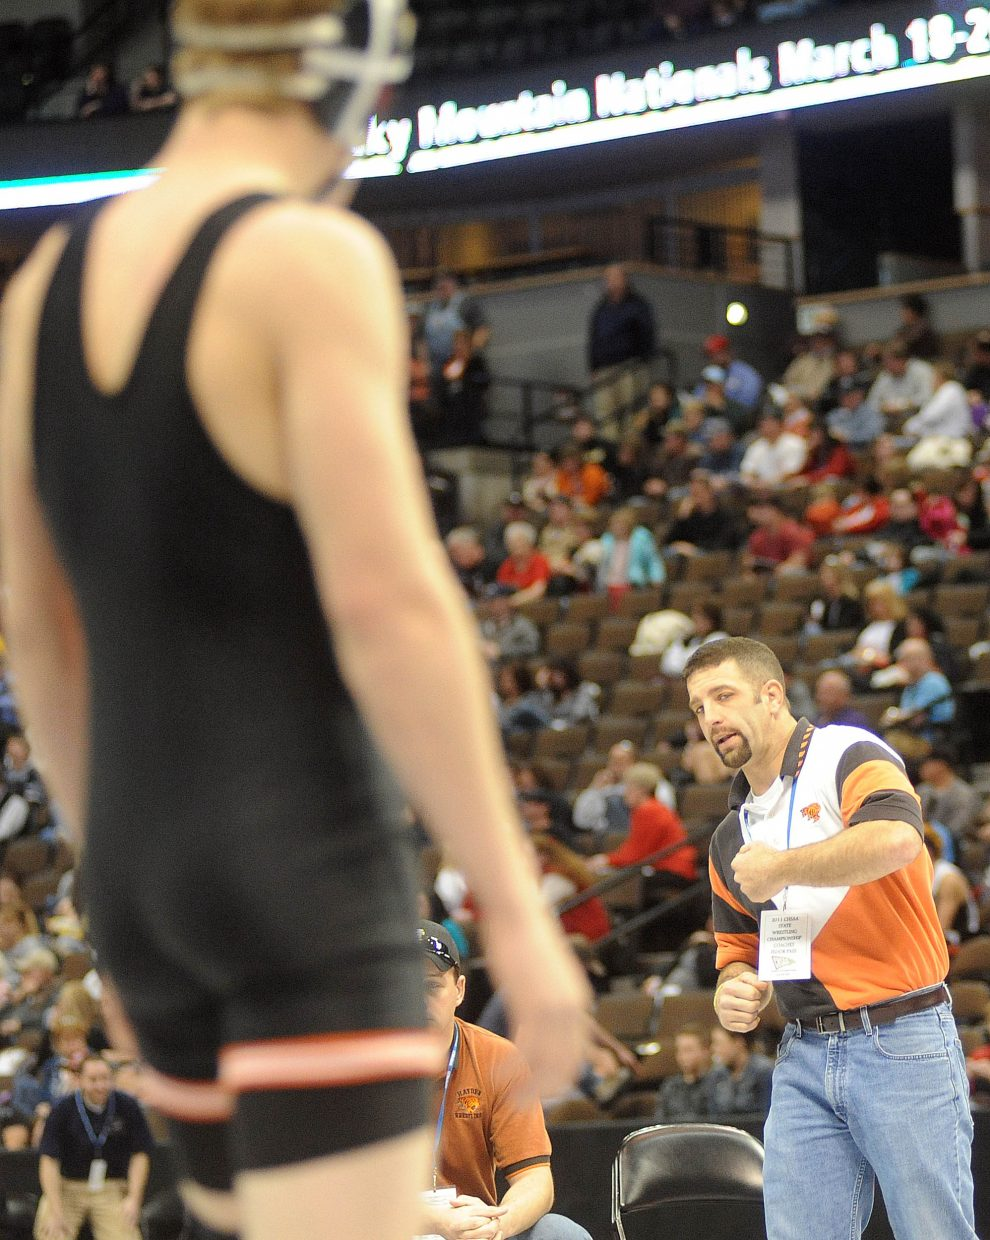 Hayden coach Ty Camilletti throws a tip to Ryan Domson on Thursday during the first round of the Class 2A state wrestling tournament in Denver.